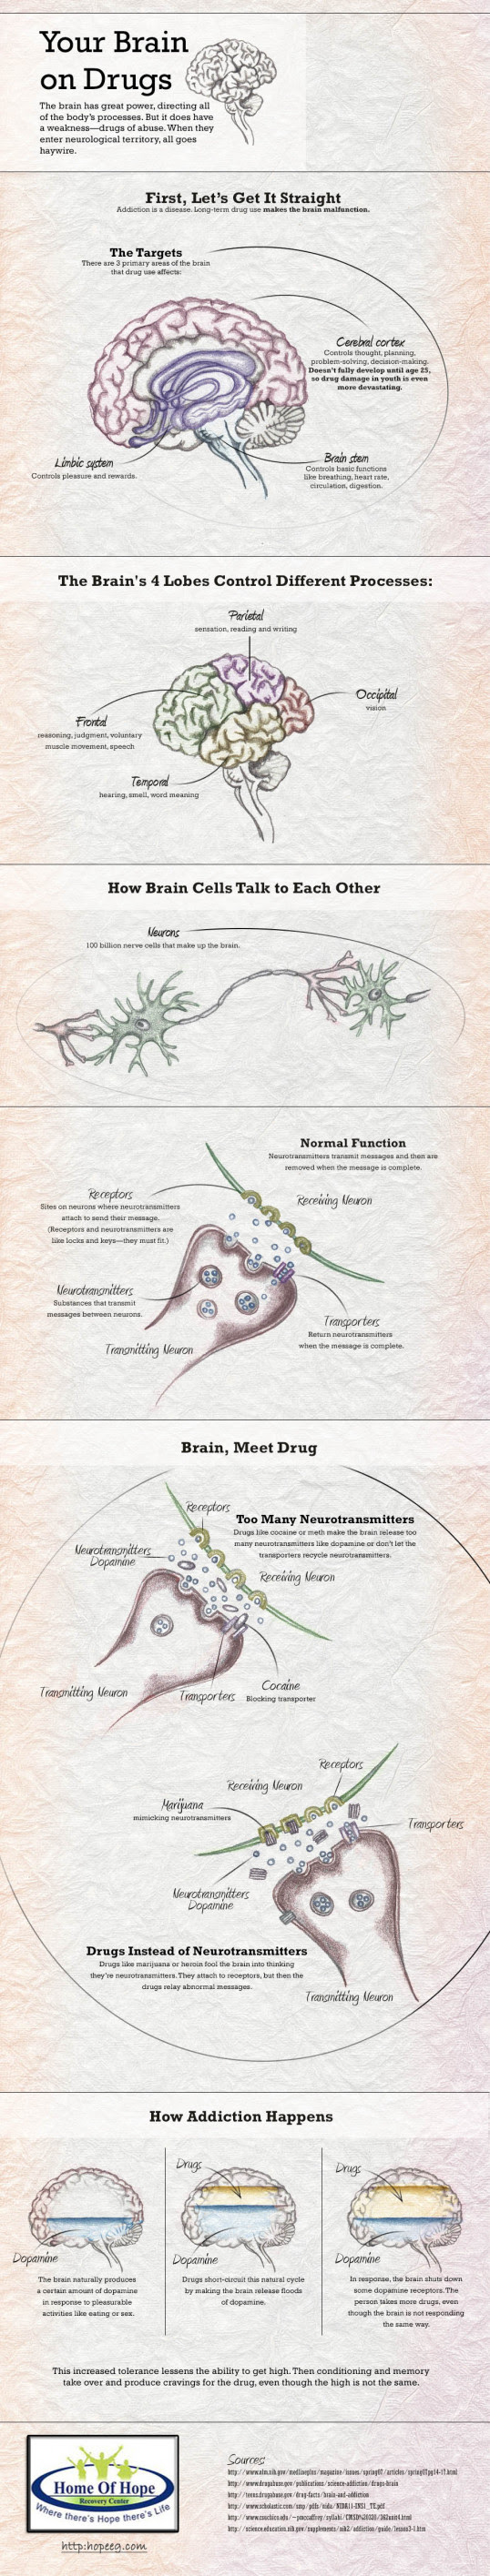 how drugs affect the brain